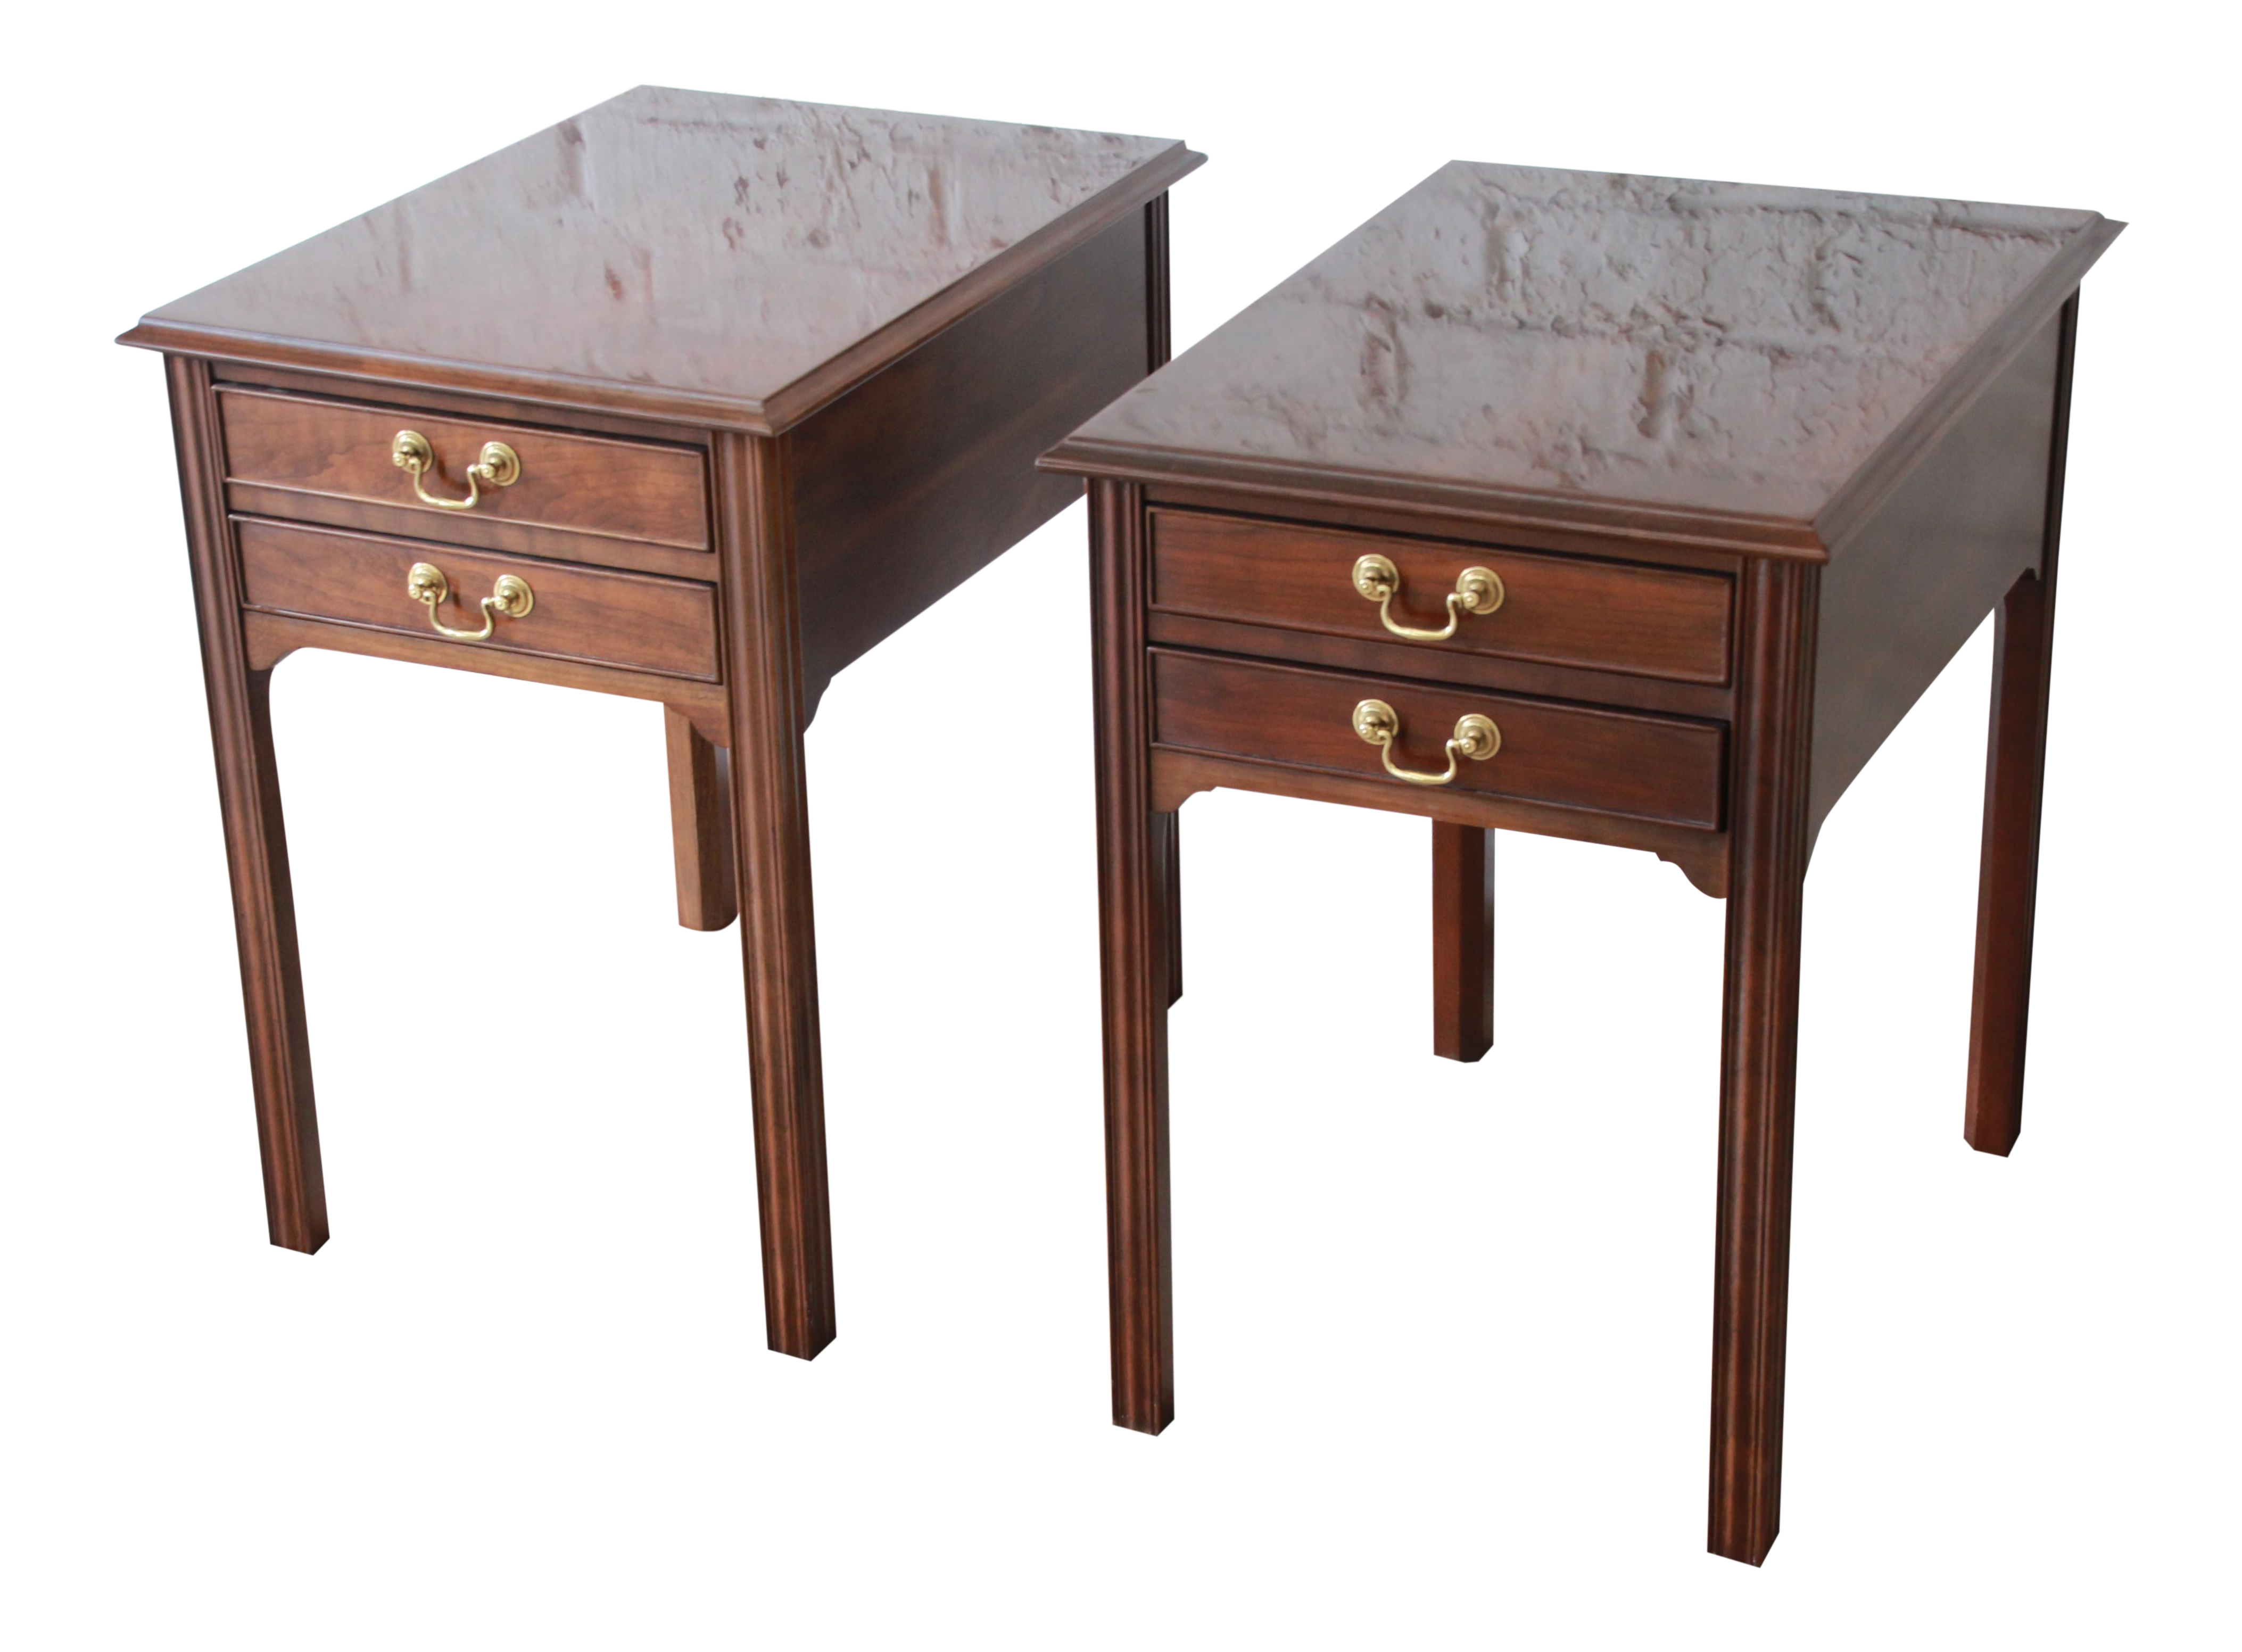 stickley style cherry wood nightstands end and tables pair chairish unfinished pub table kmart furniture bear accent universal long for hallway navy blue nightstand patio glass